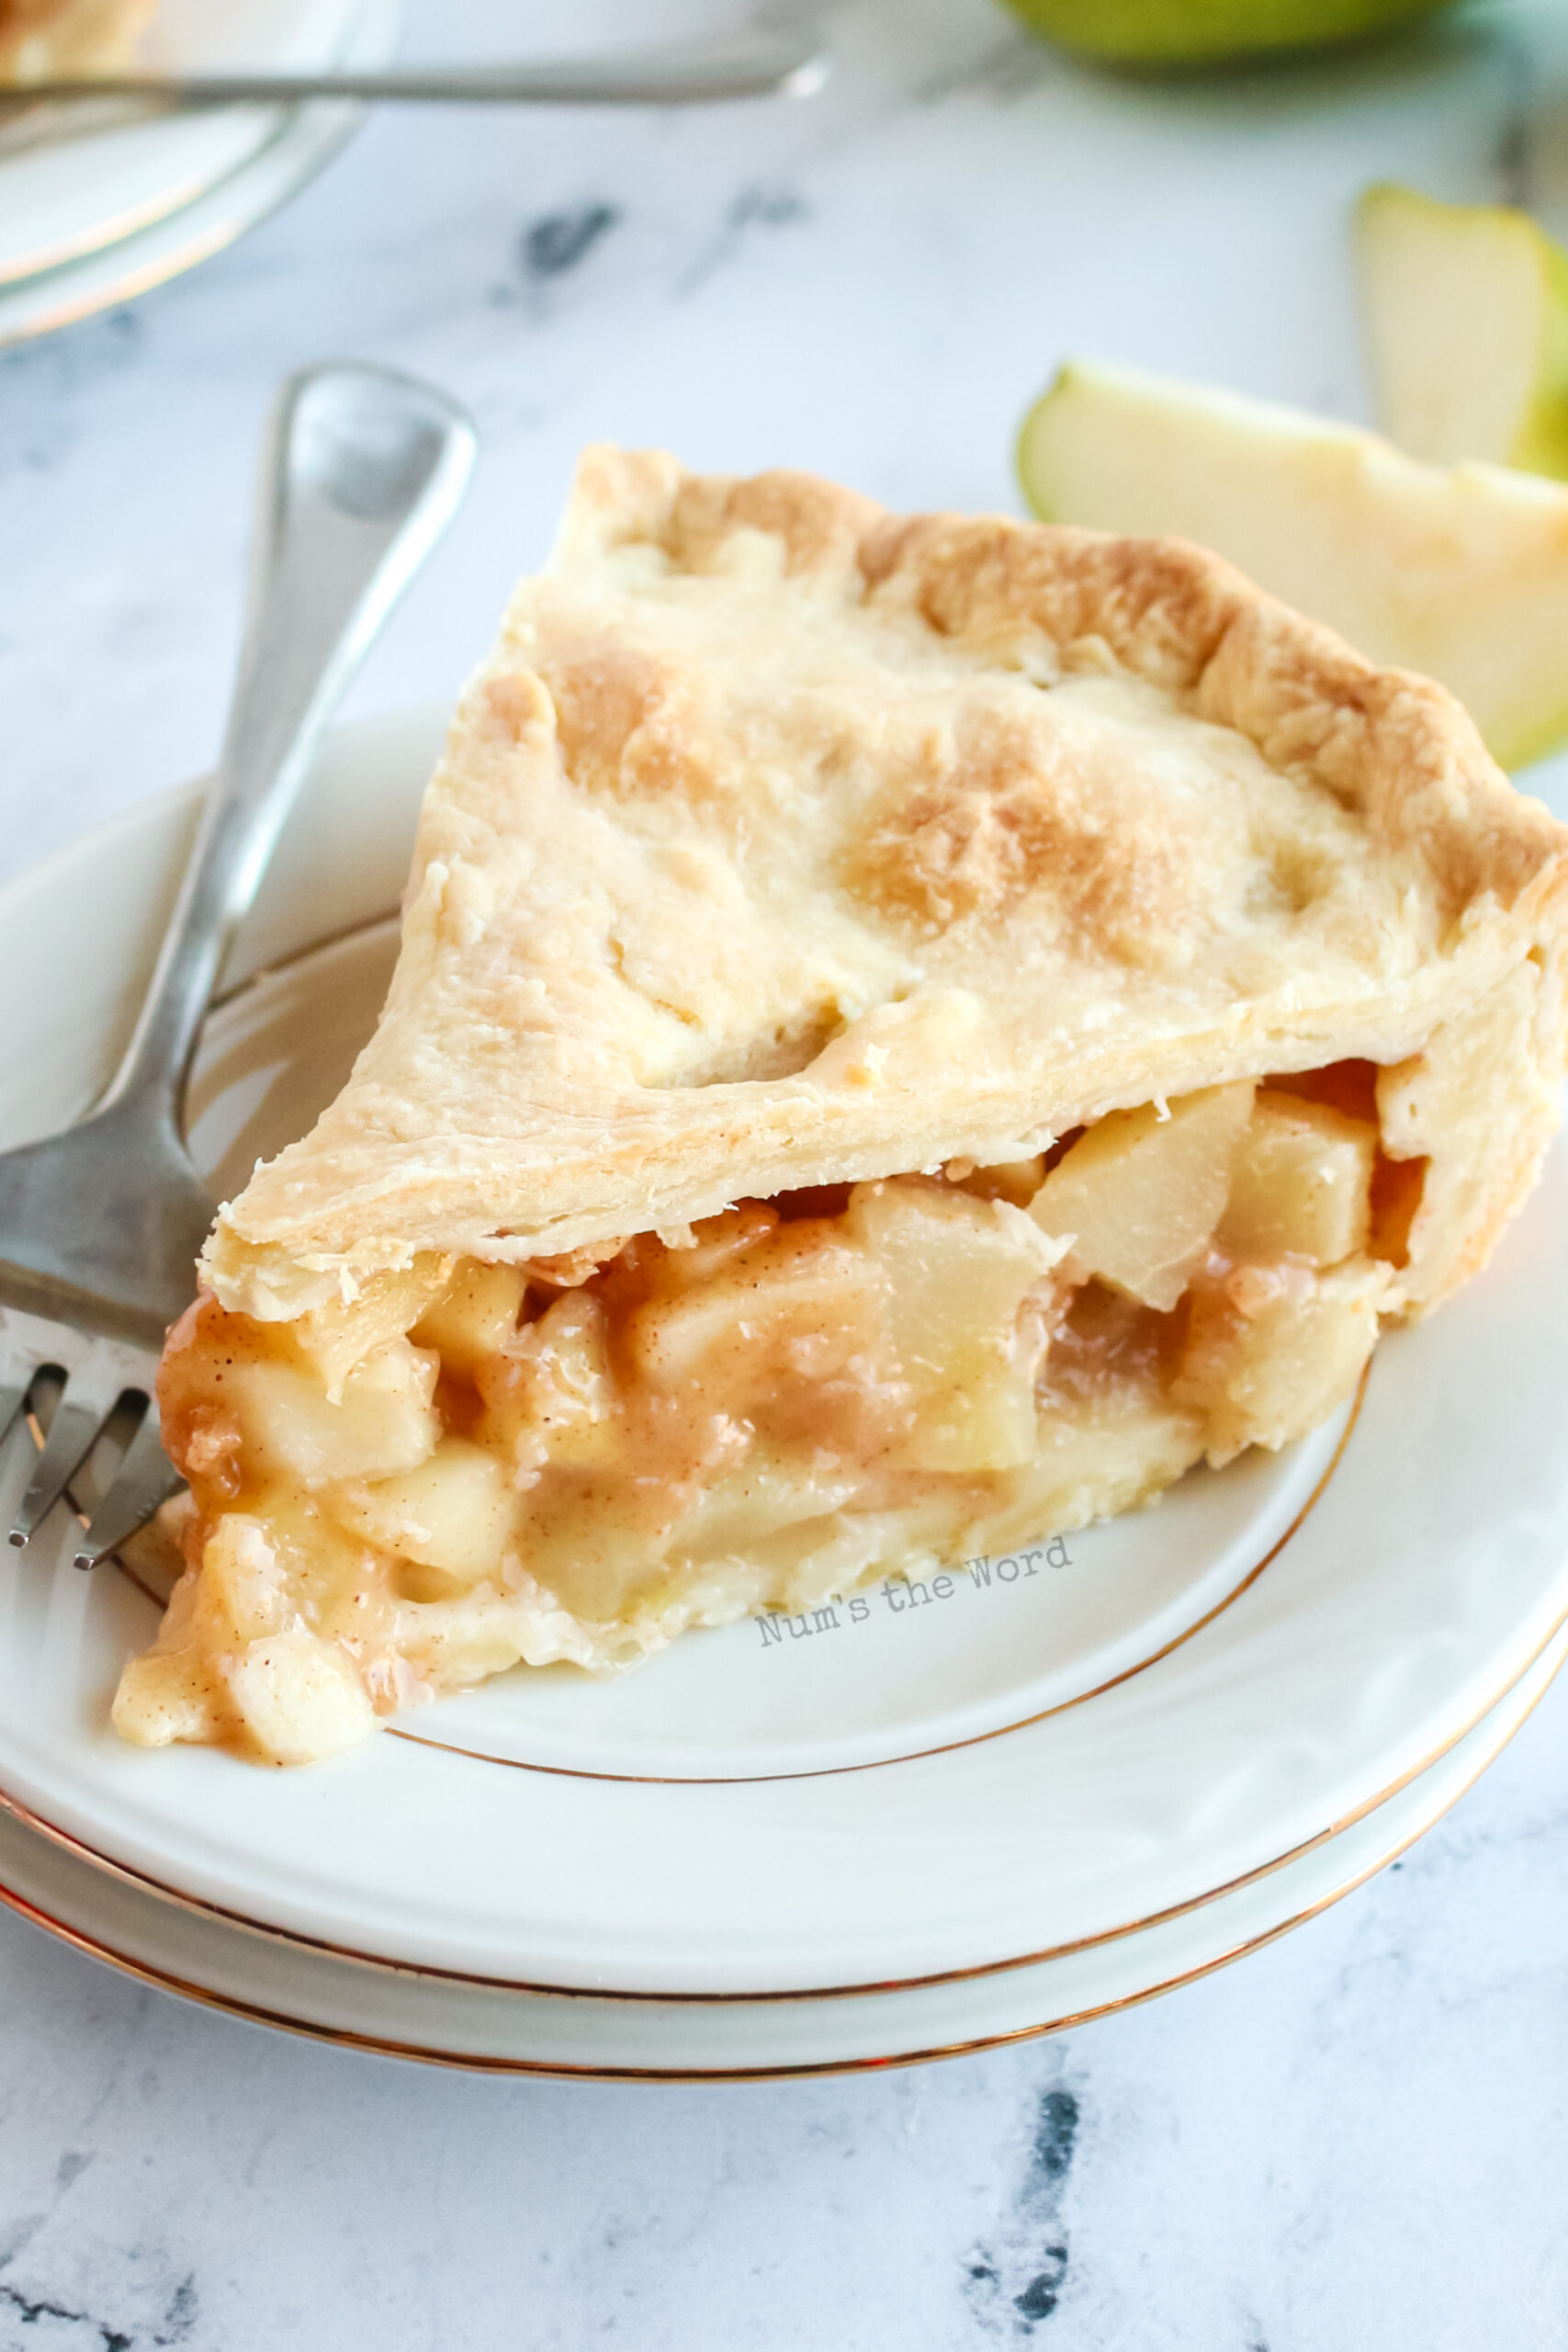 Pear Pie Num S The Word